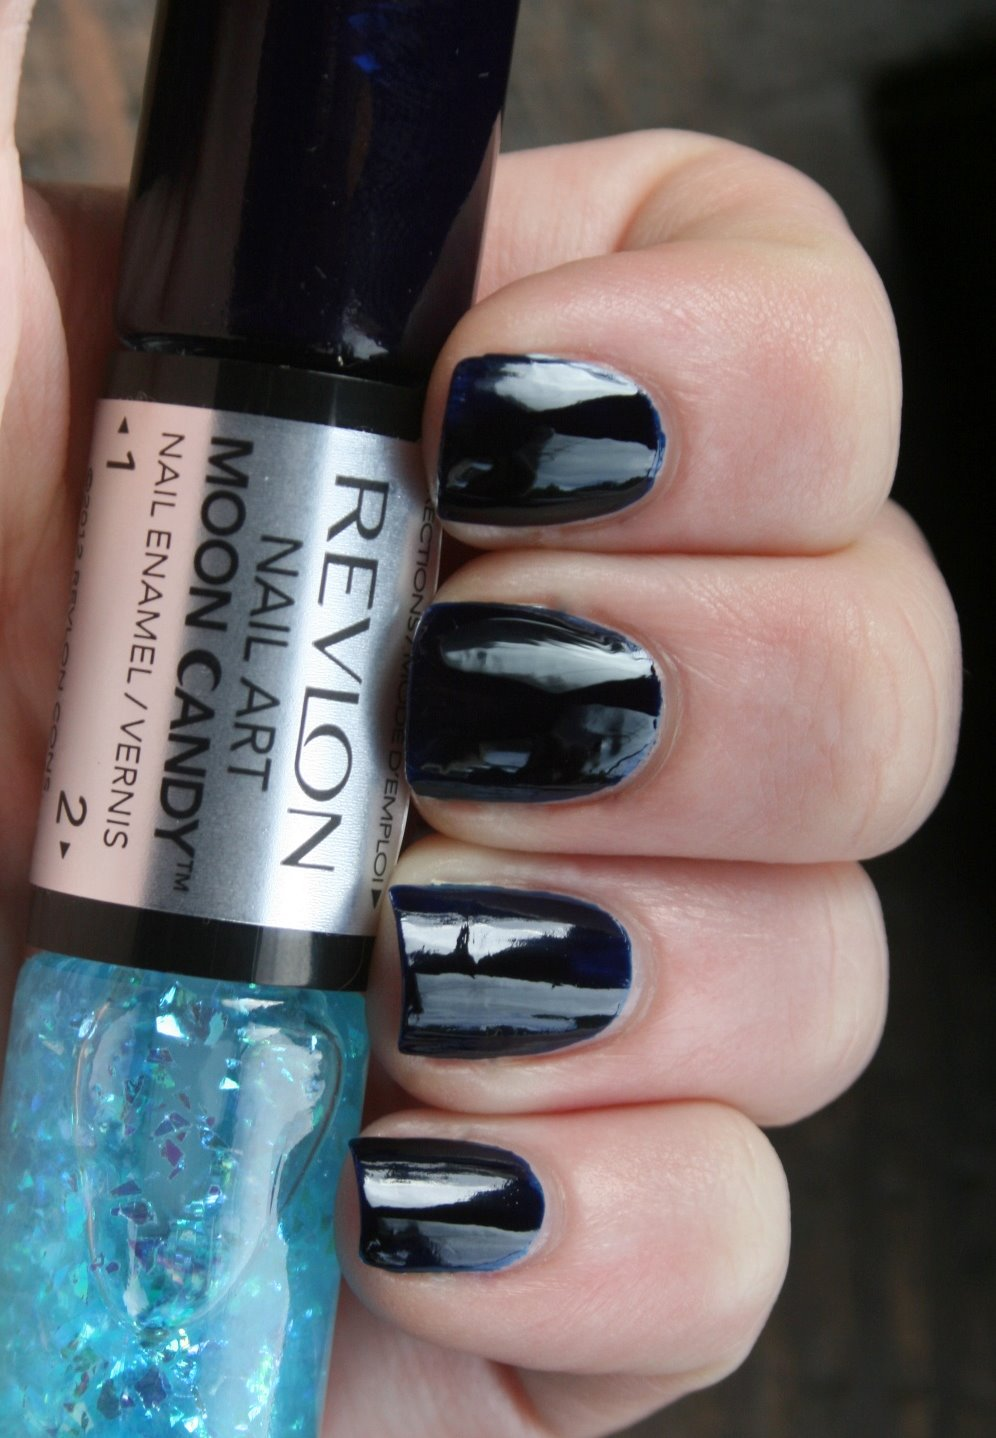 Revlon Moon Candy Galactic swatch